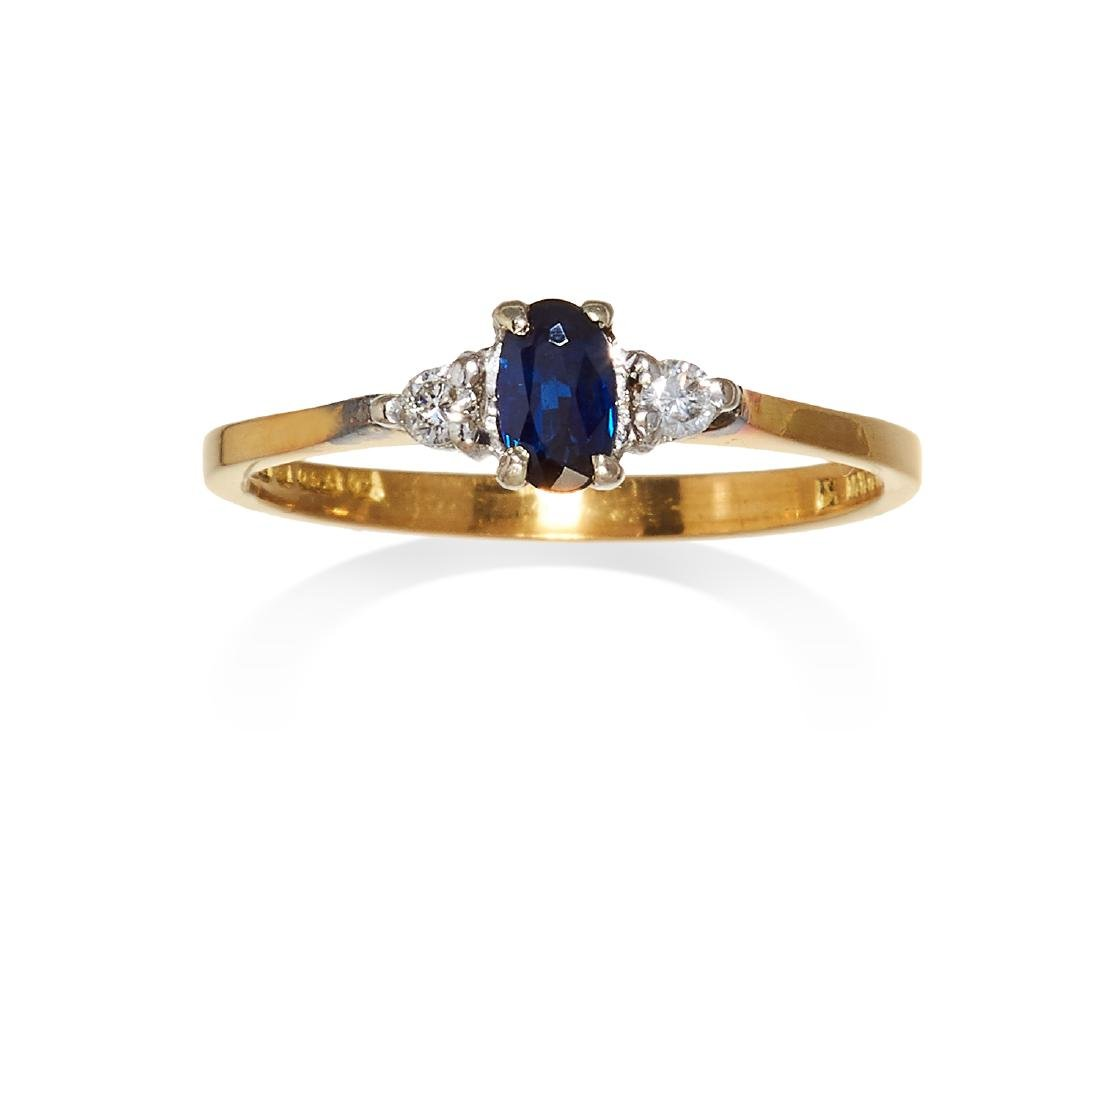 A SAPPHIRE AND DIAMOND THREE STONE RING in 18ct yellow